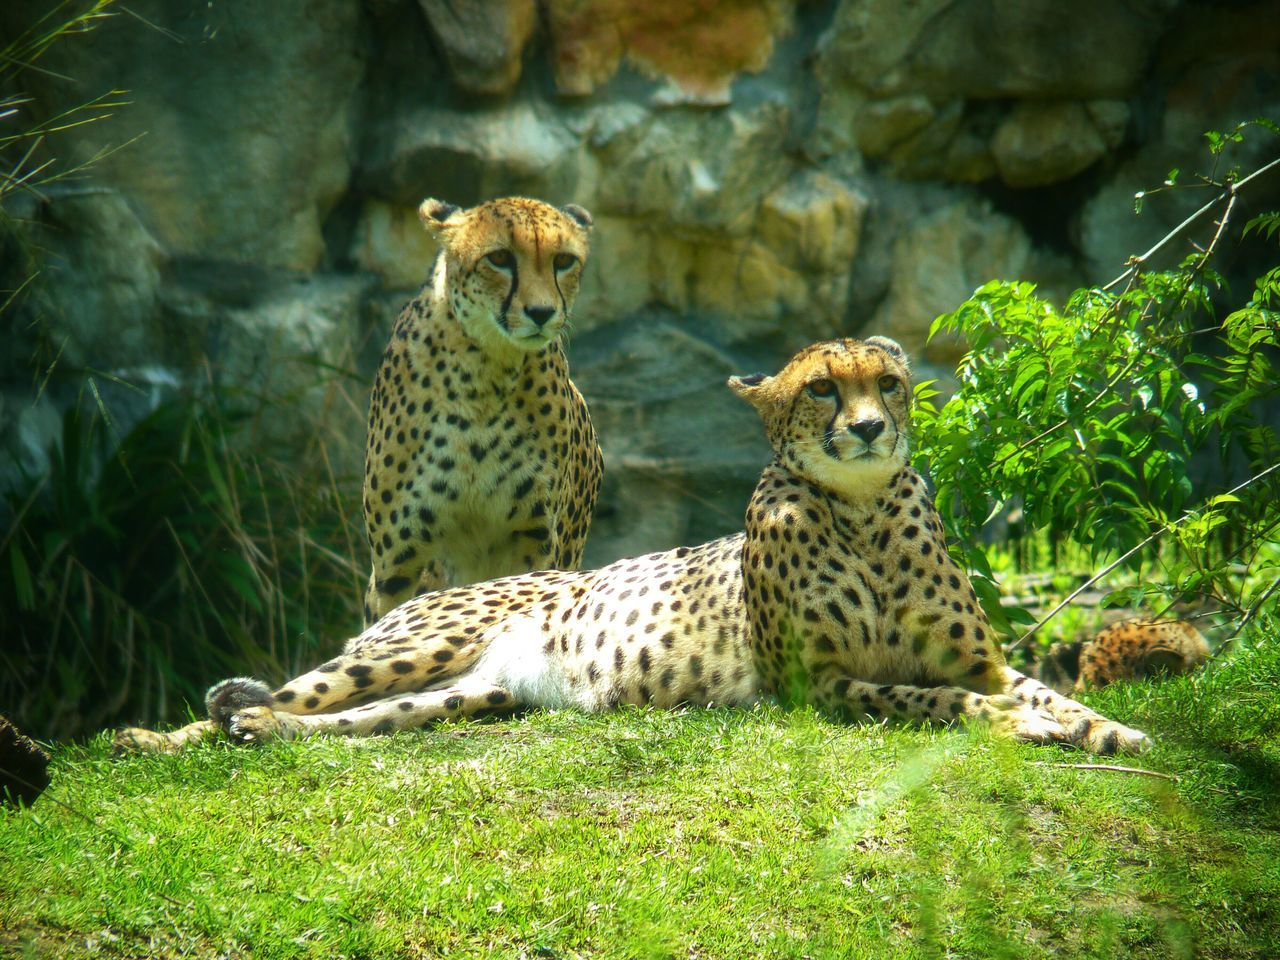 Pareja de Chitas. Cheetah Couple Outdoors Animal No People Zoo Animals Togetherness Felines Nature Sunny Day 🌞 Animal Themes Cats Eyes Grass Day Close-up Portrait Beauty In Nature Companion Temaiken